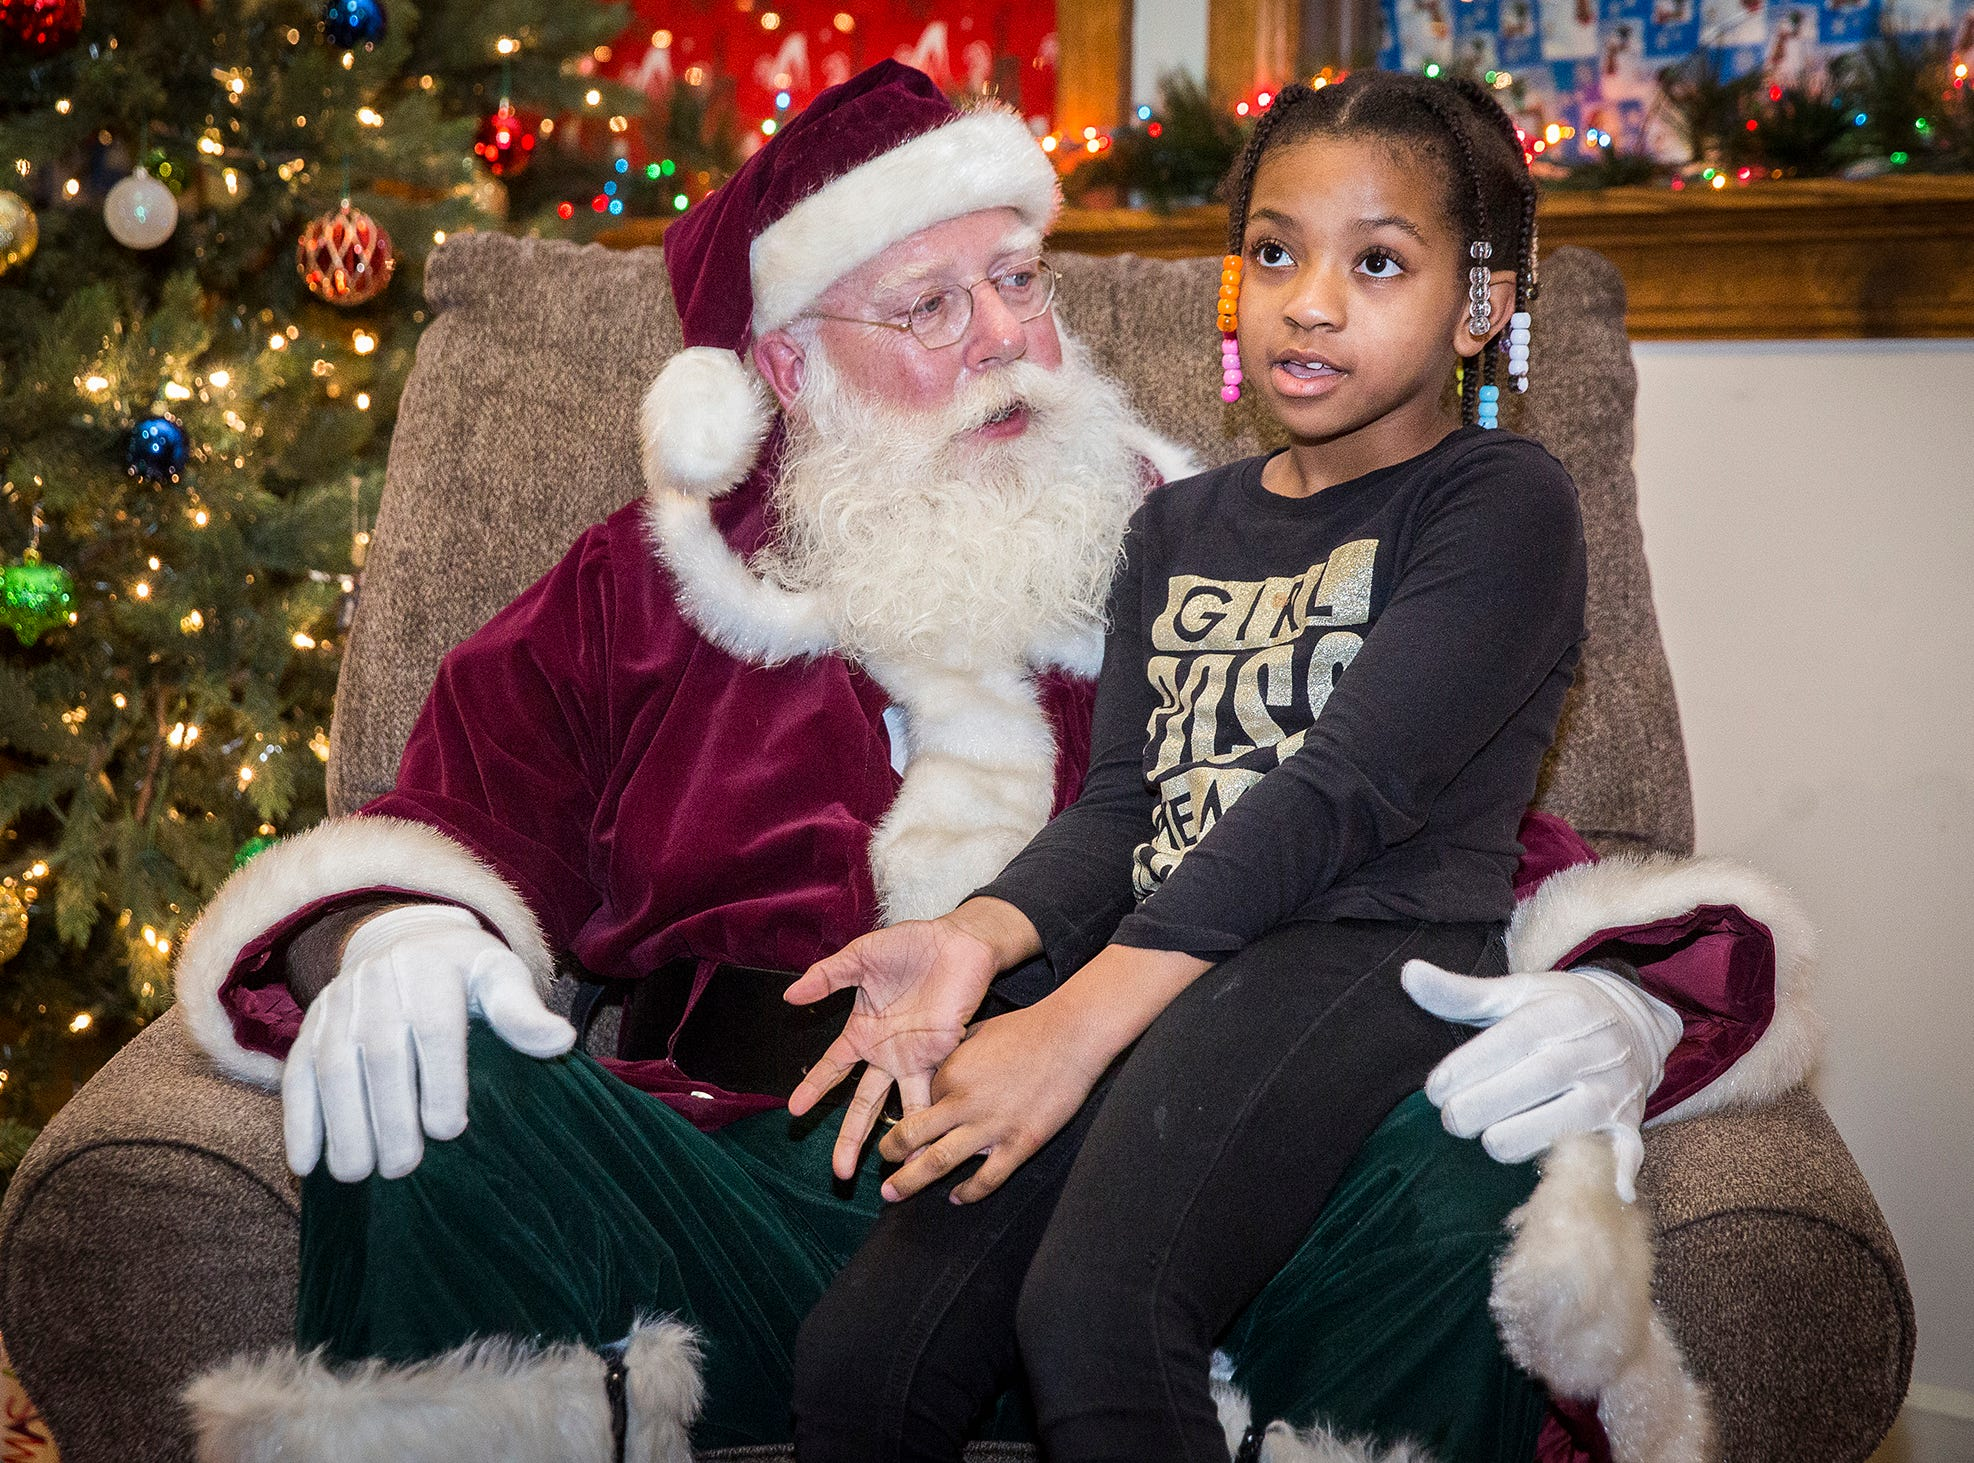 Hundreds of families stood in line to meet Santa at the Wysor Street Depot during the facility's An Old Fashioned Christmas event Friday evening. Attendees enjoyed hot coco and Christmas-themed stories before they visited Santa and received a free gift.